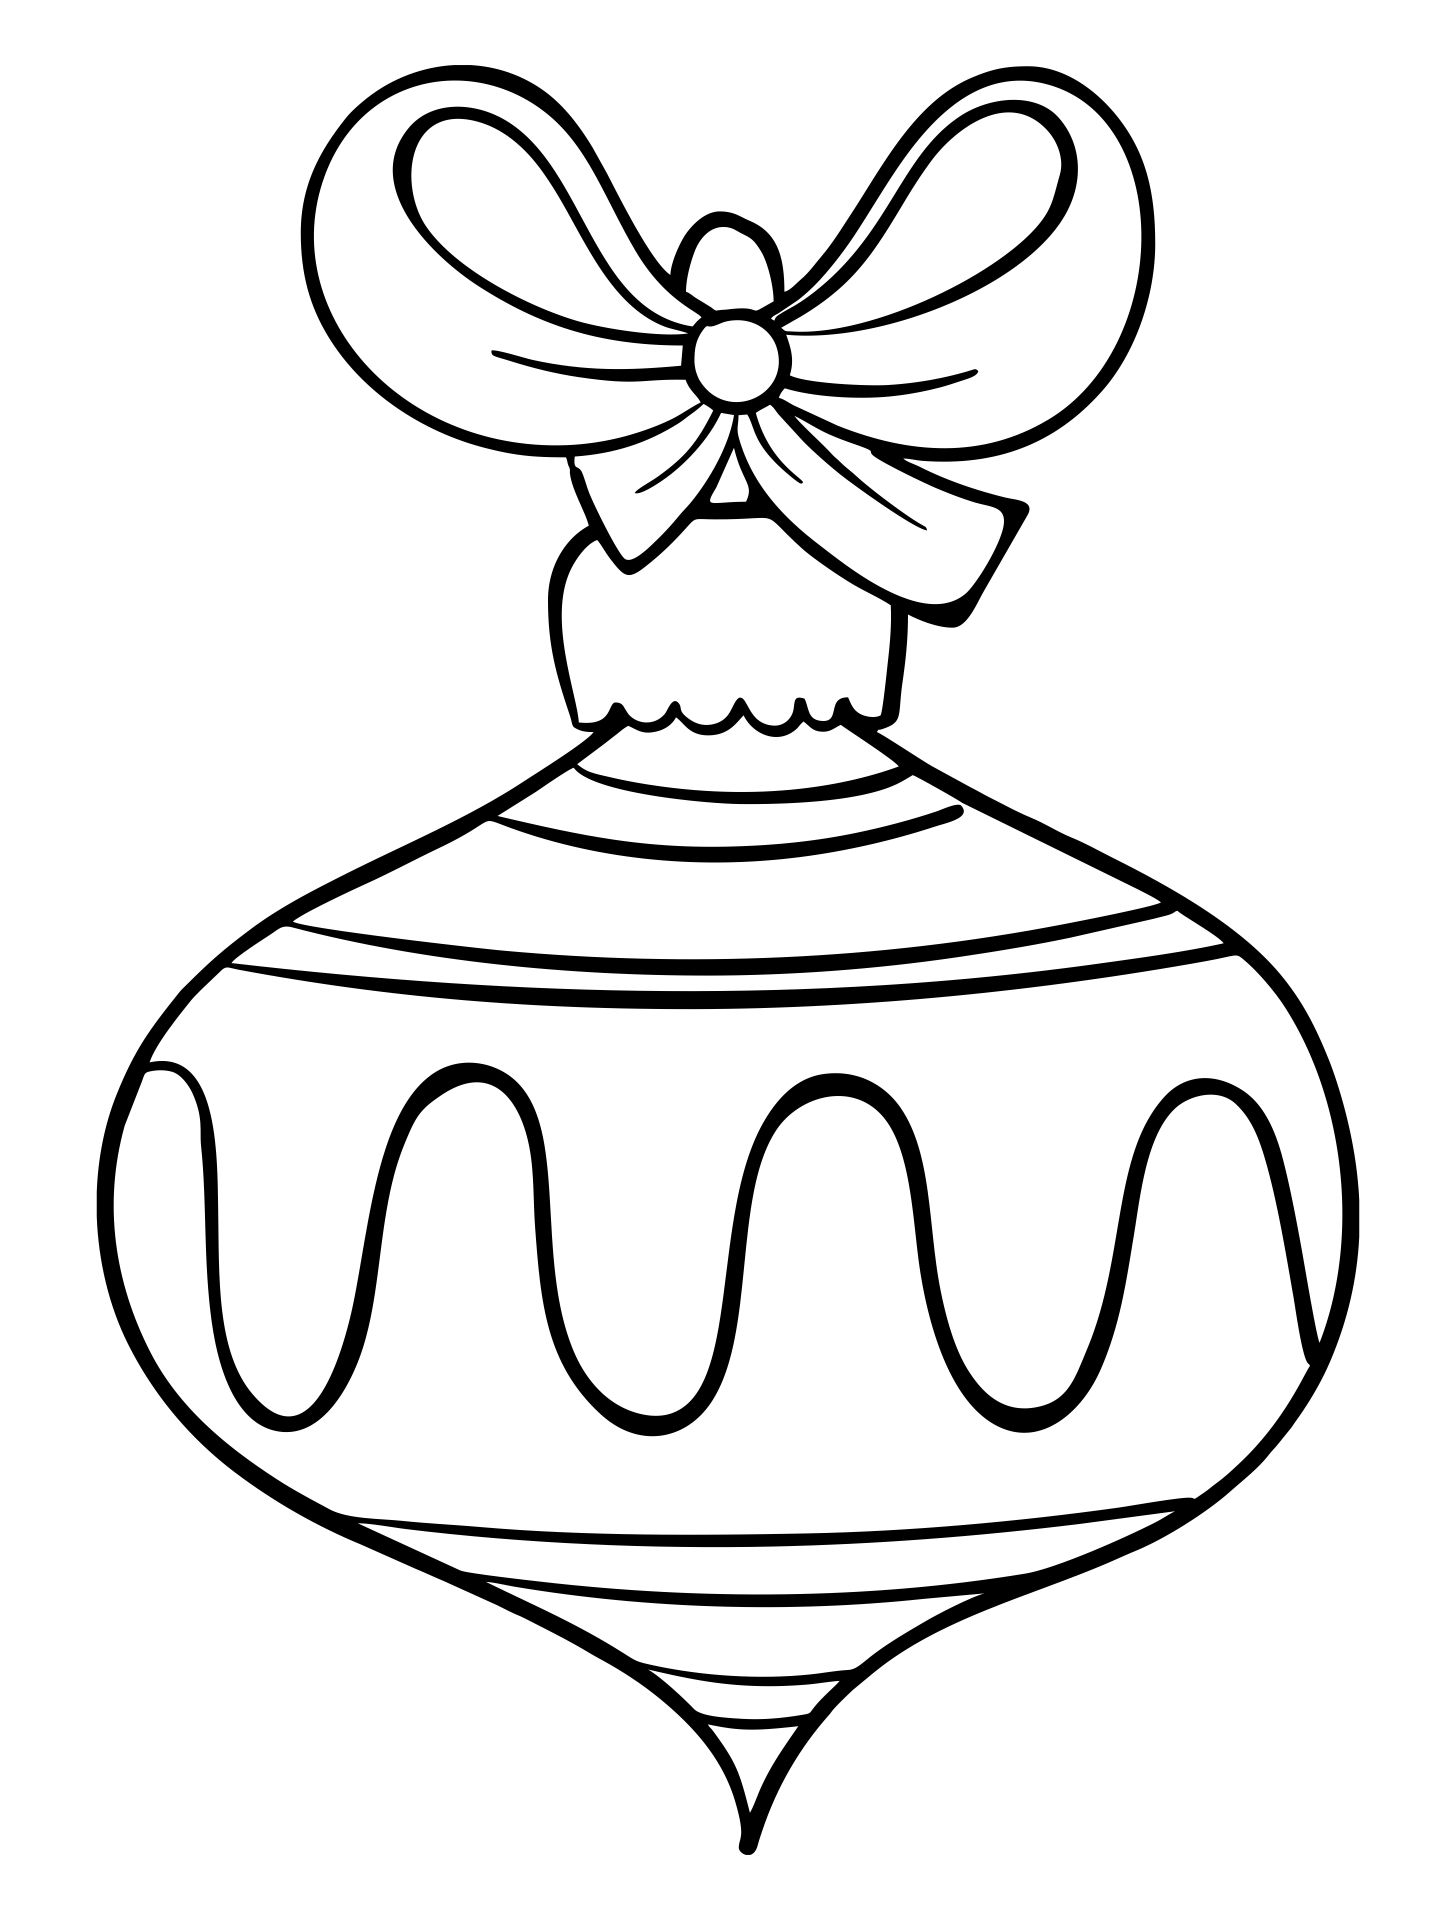 7 Best Images Of Free Christmas Printable Ornament Coloring Pages Ornaments Printable